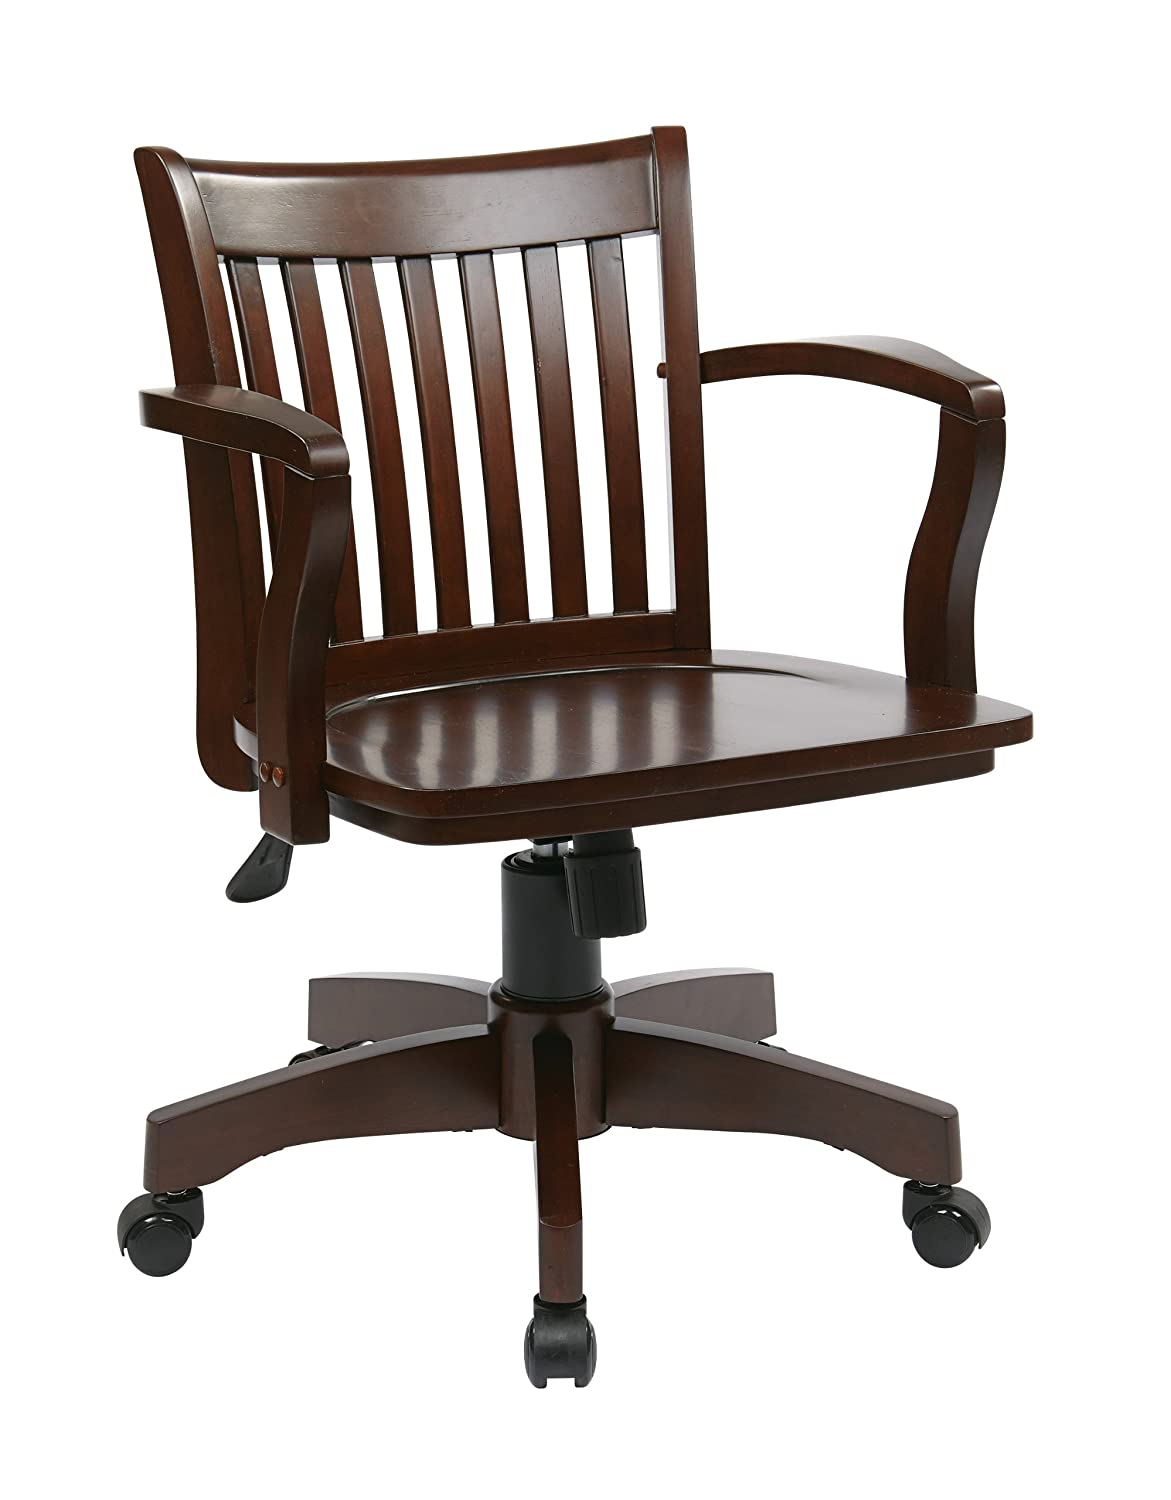 wooden swivel office chair contemporary wooden amazoncom office